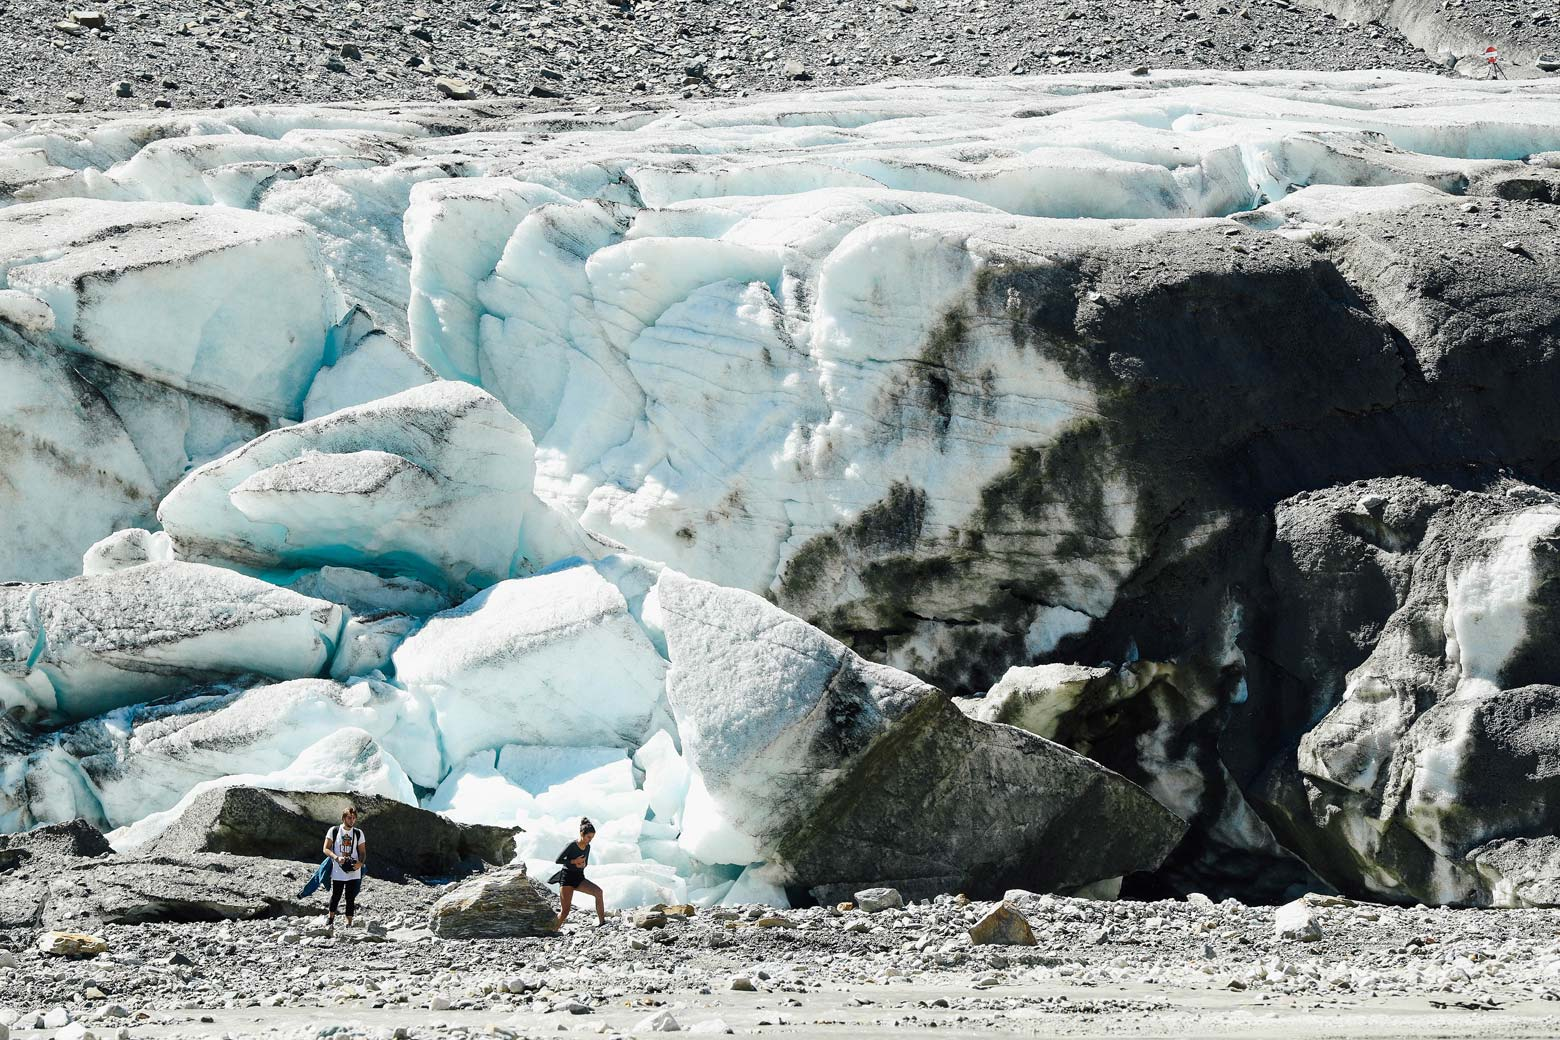 Visitors walk past collapsing, melting ice.